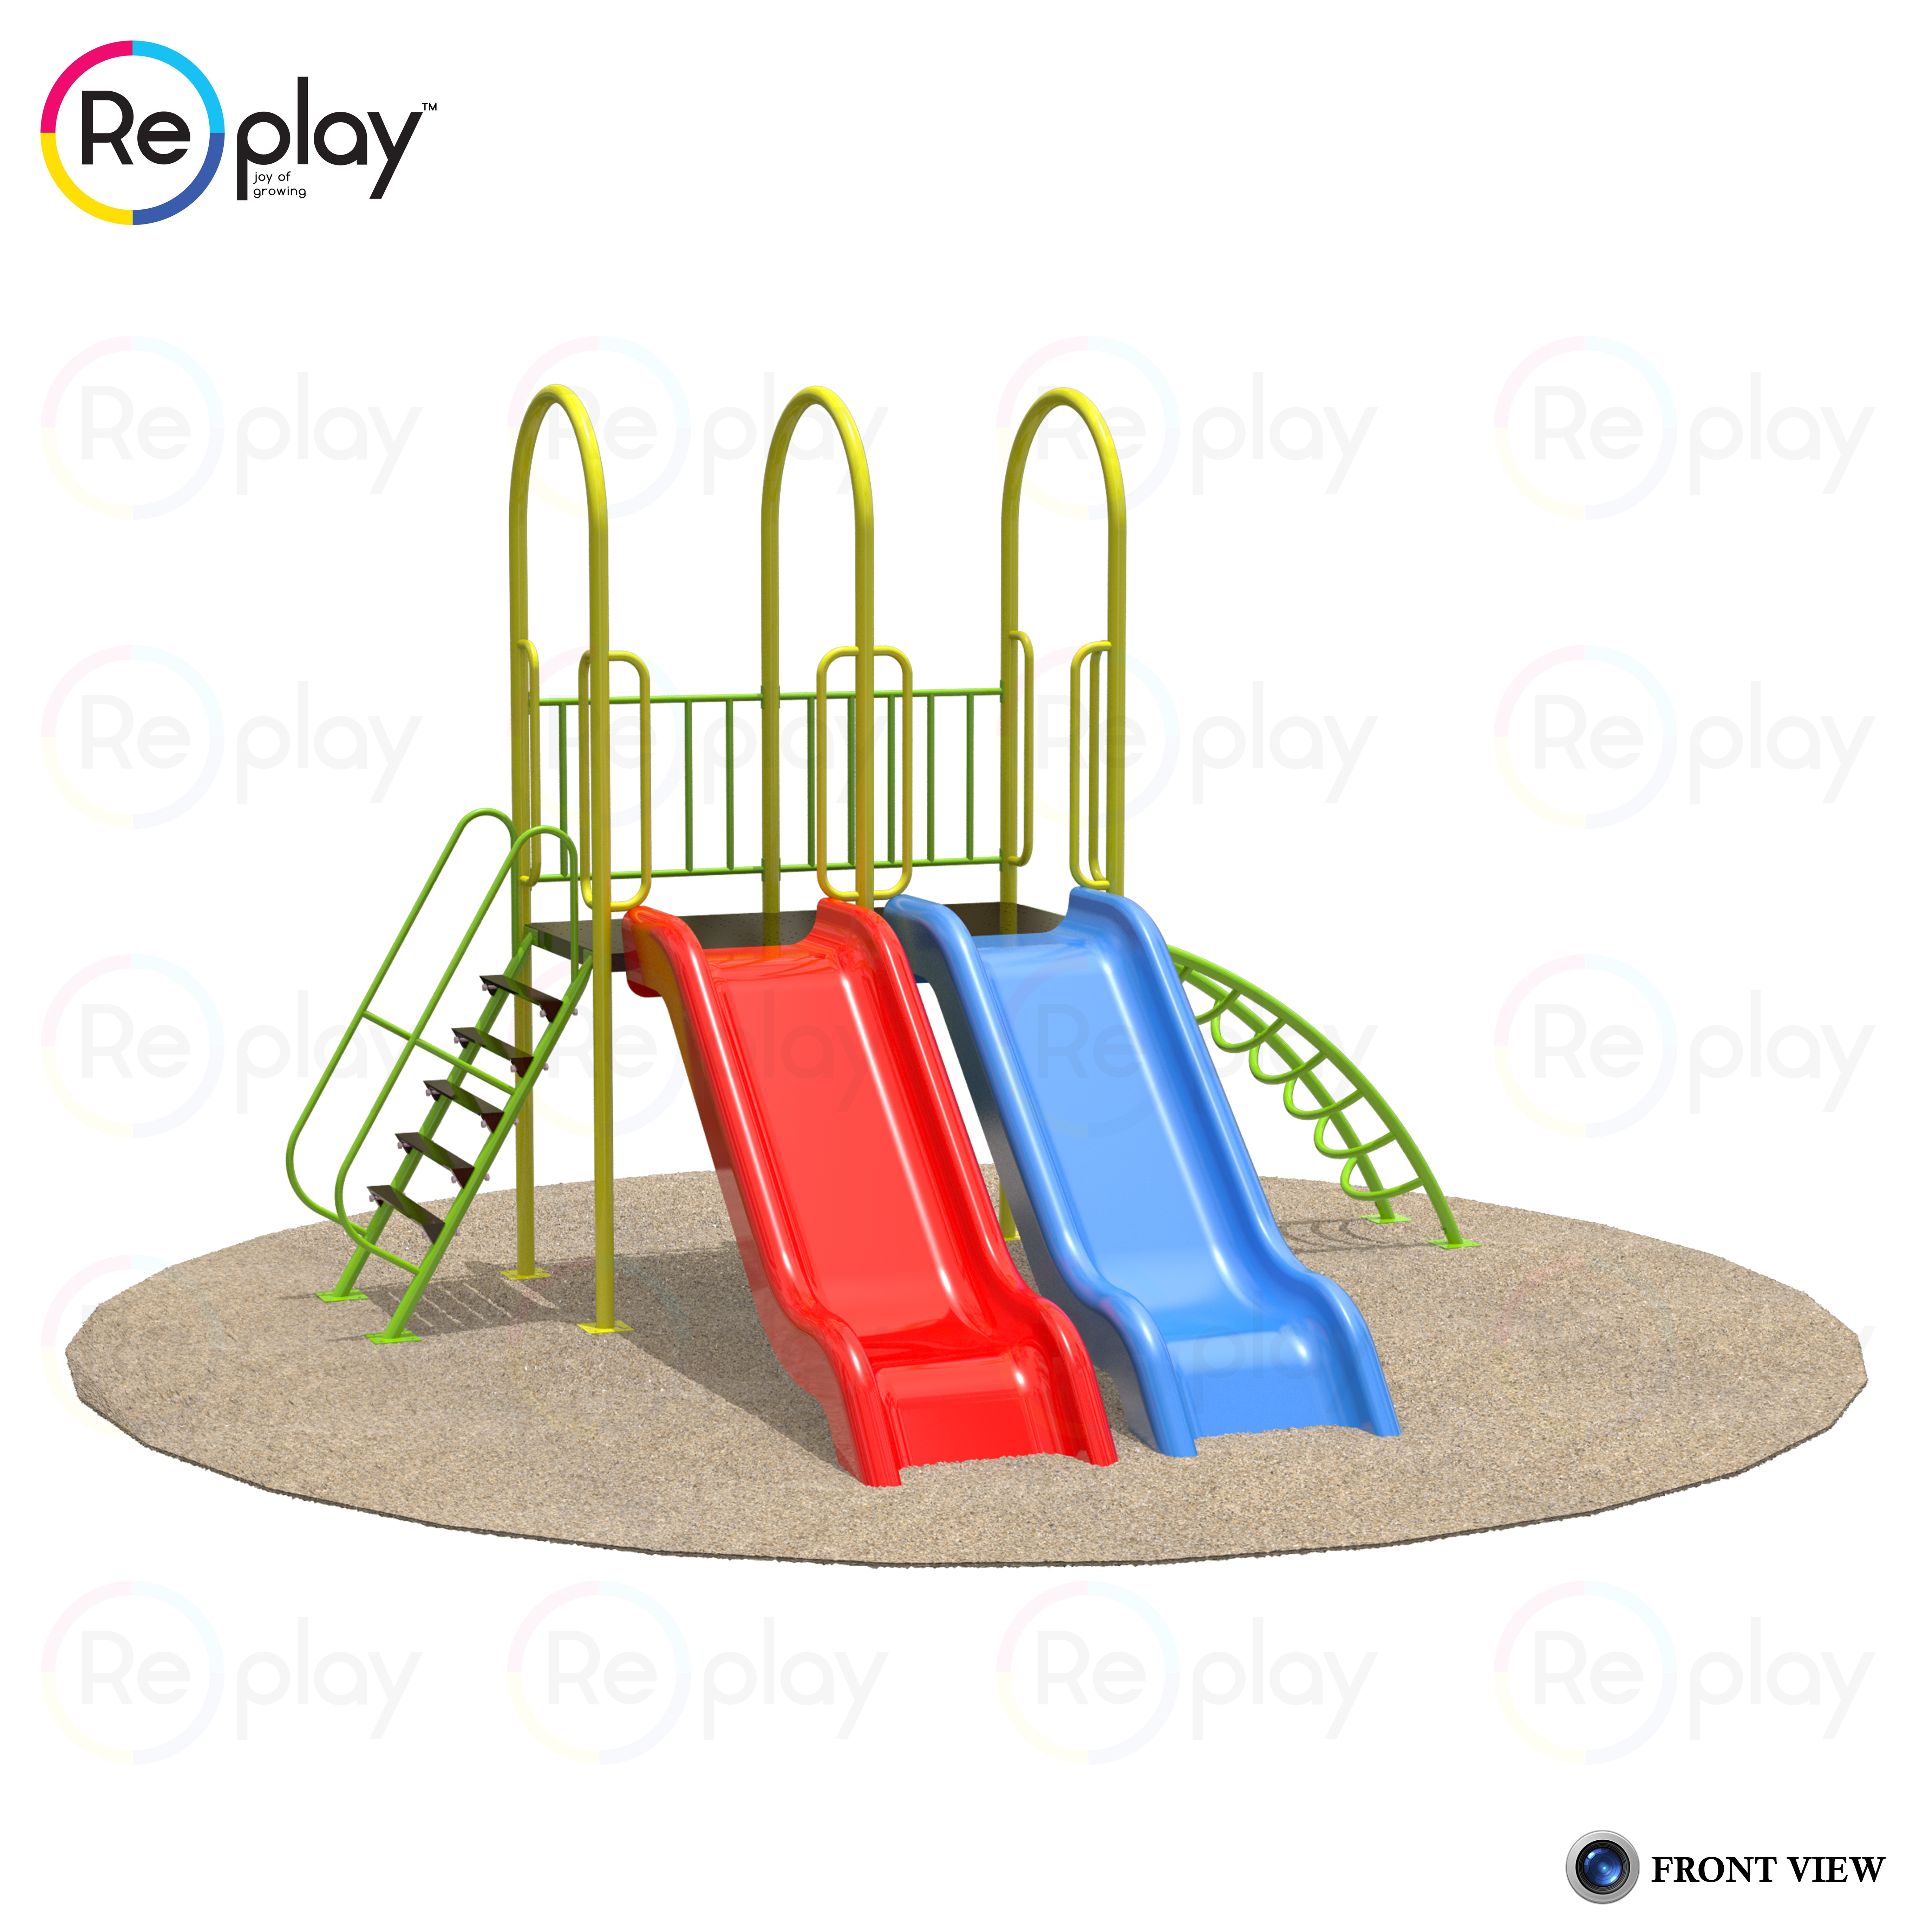 DOUBLE SLIDE MULTI PLAY SYSTEM